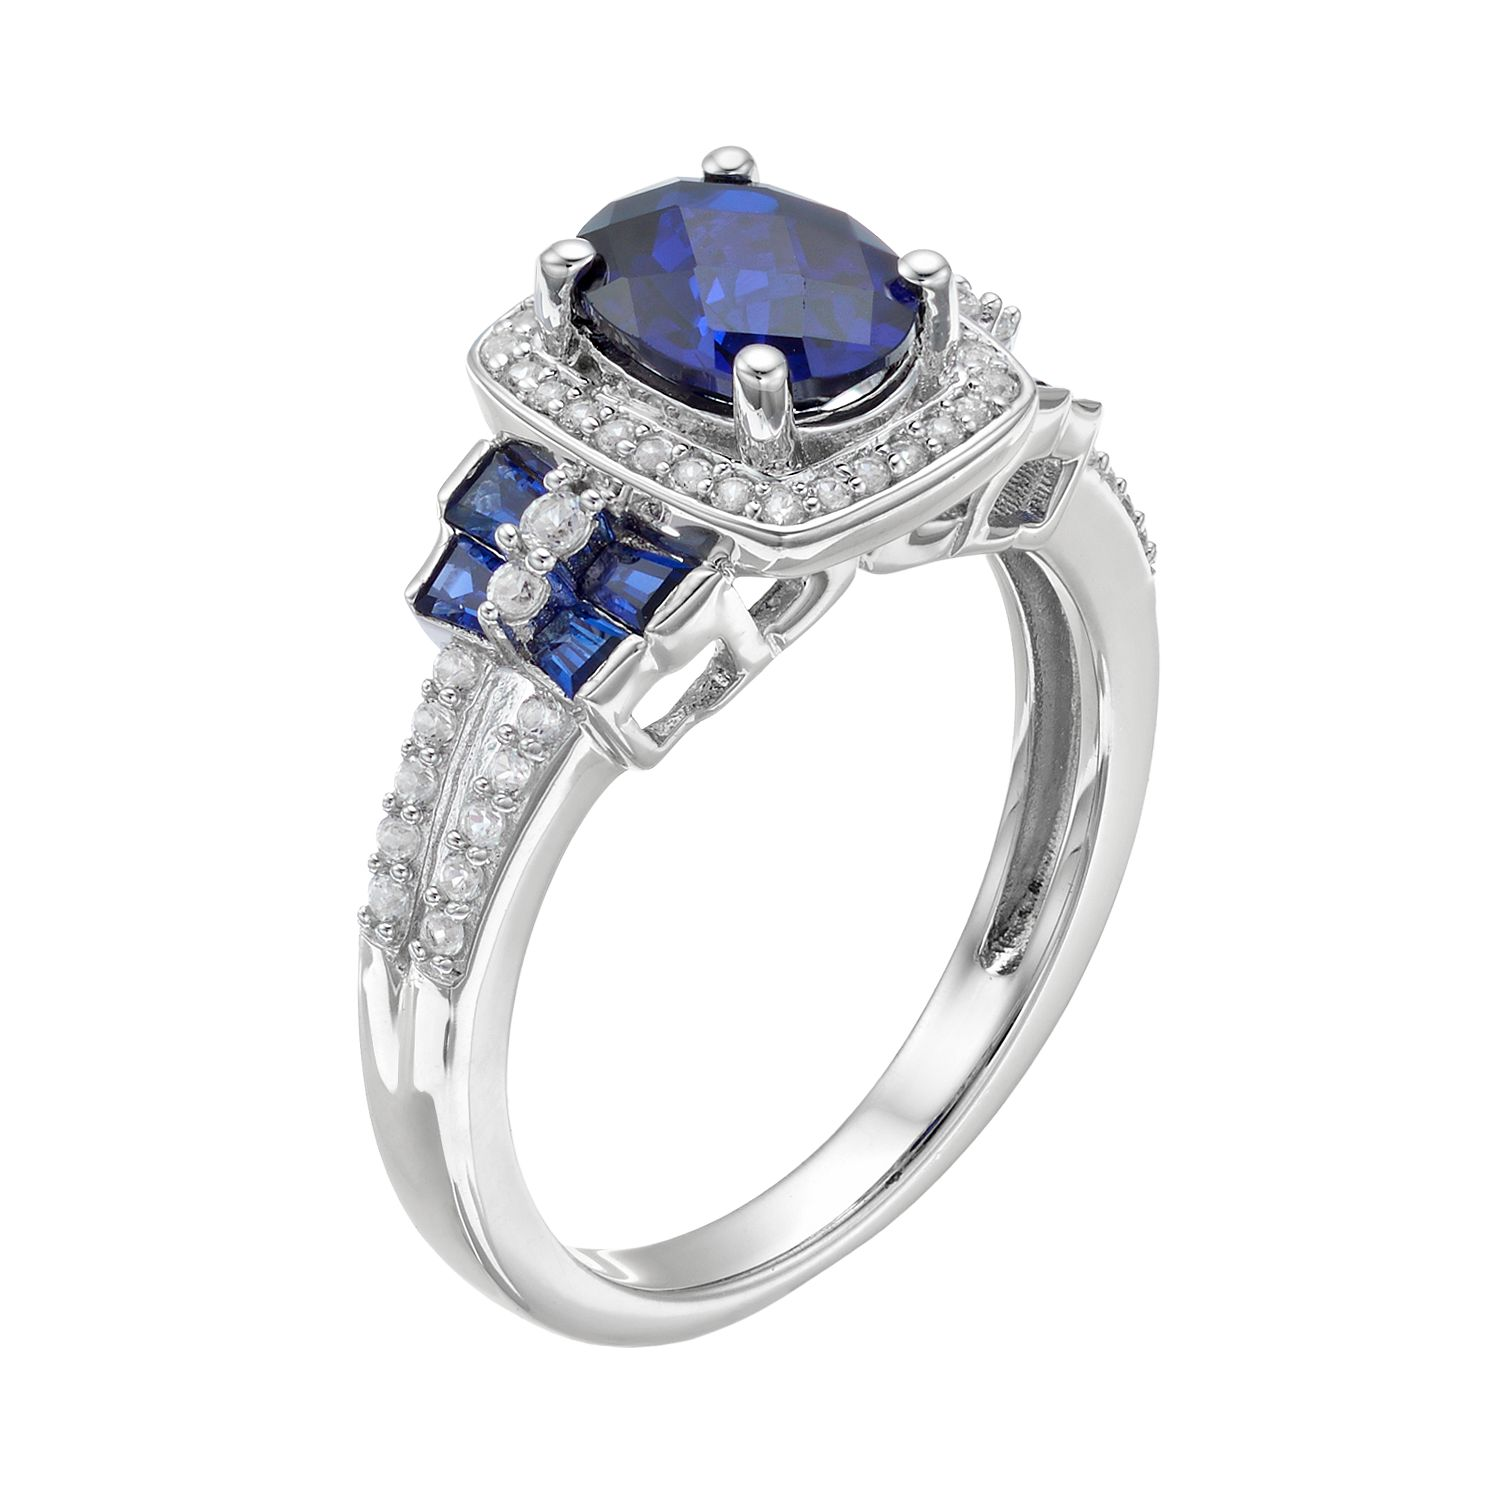 diamond k rhpinterestcom ct u ring blue allurezrhallurezcom royal emerald gold cushion rings tanzanite rose cut